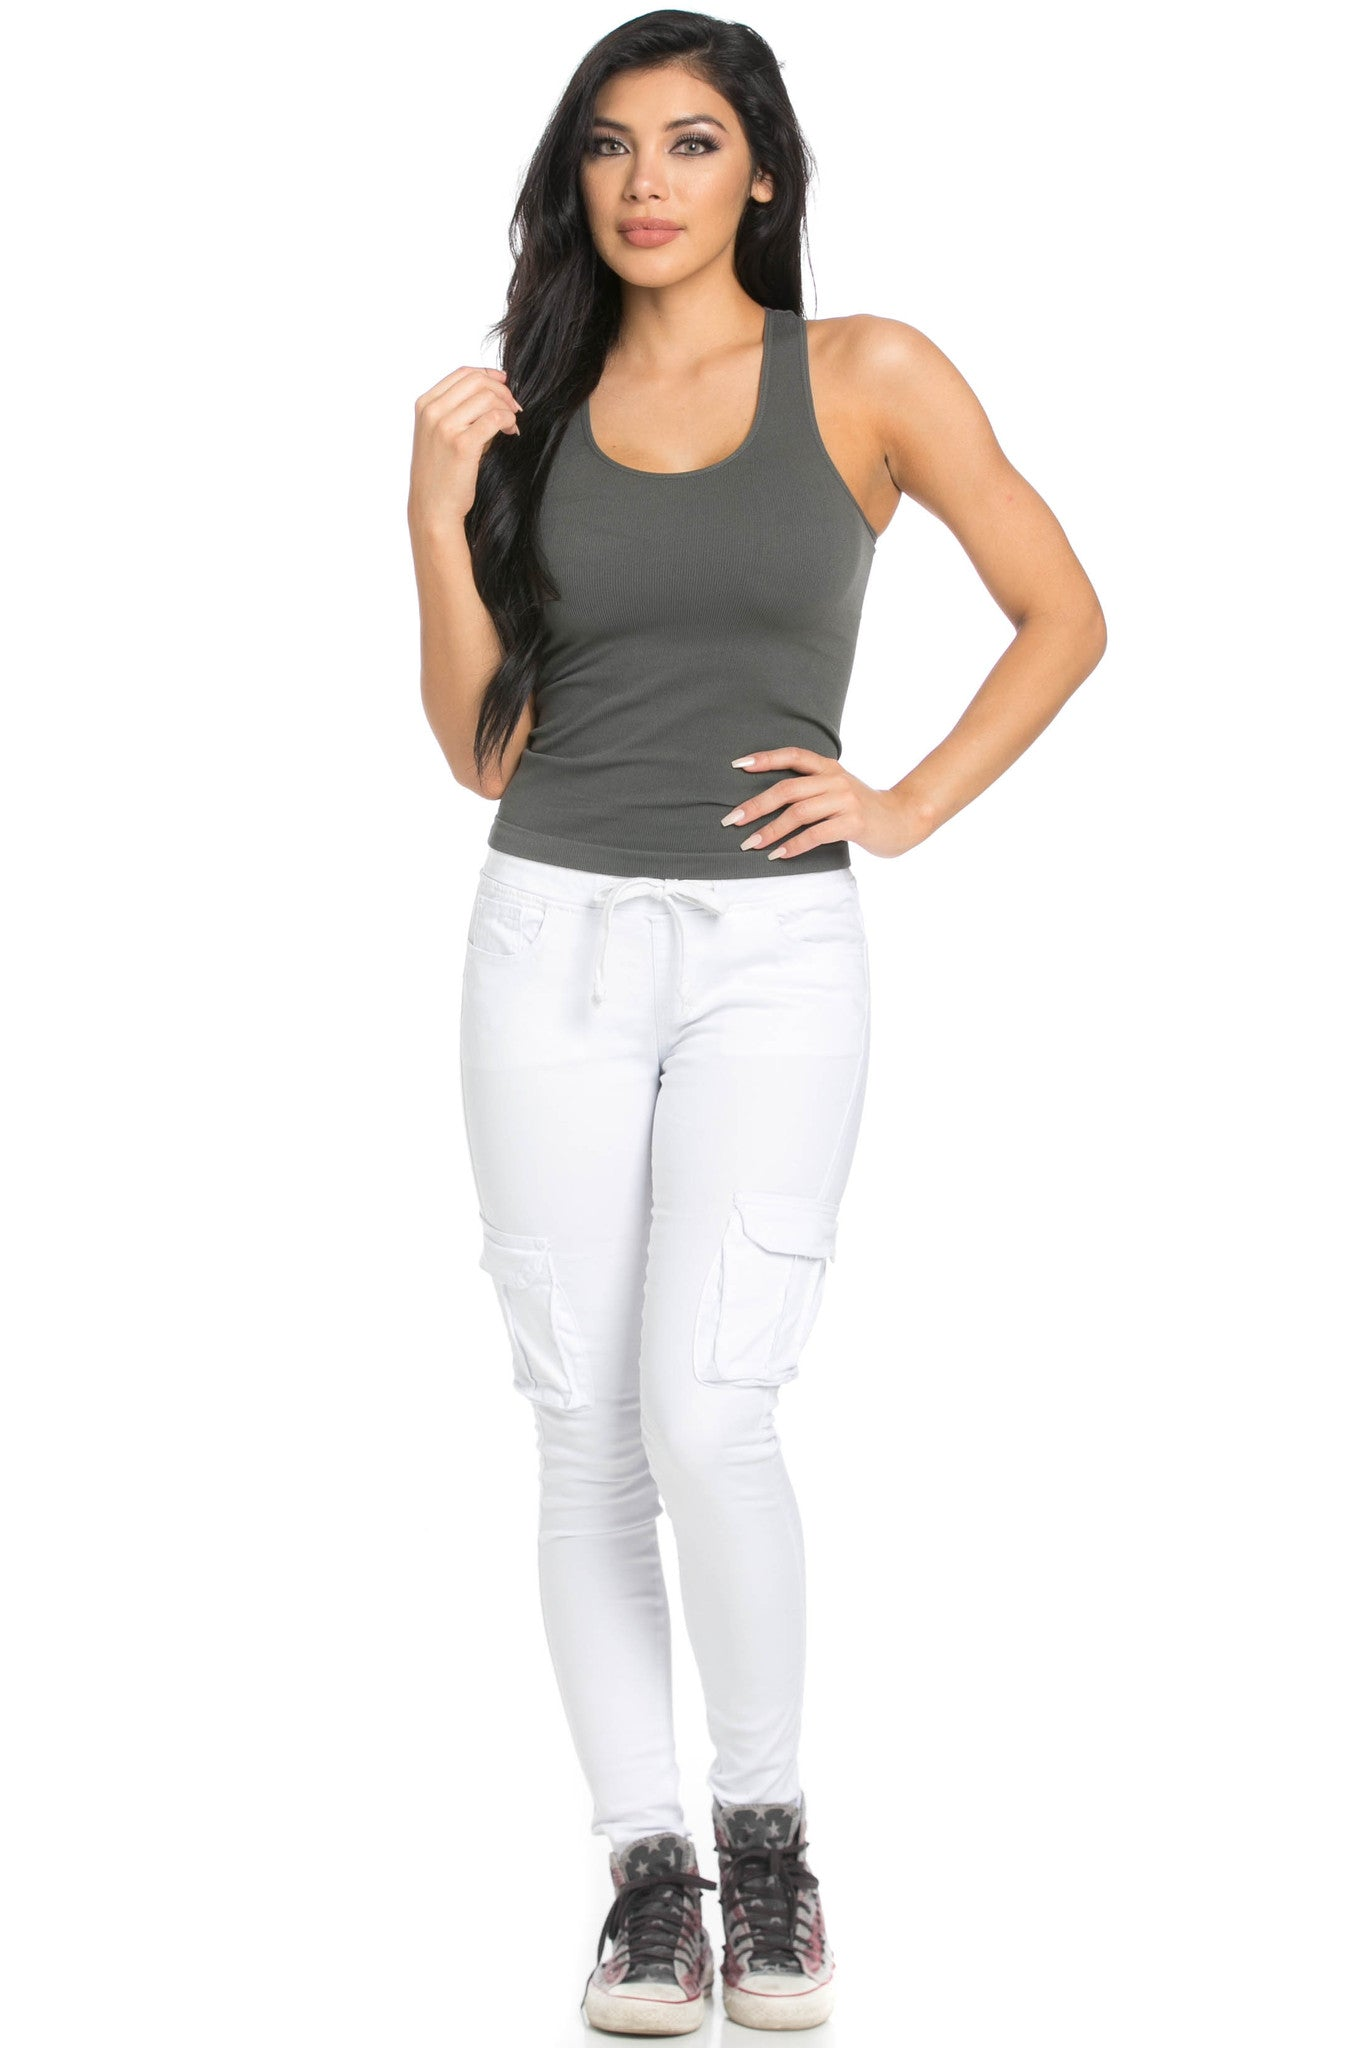 Mid Rise Skinny White Cargo Pants - Pants - My Yuccie - 8